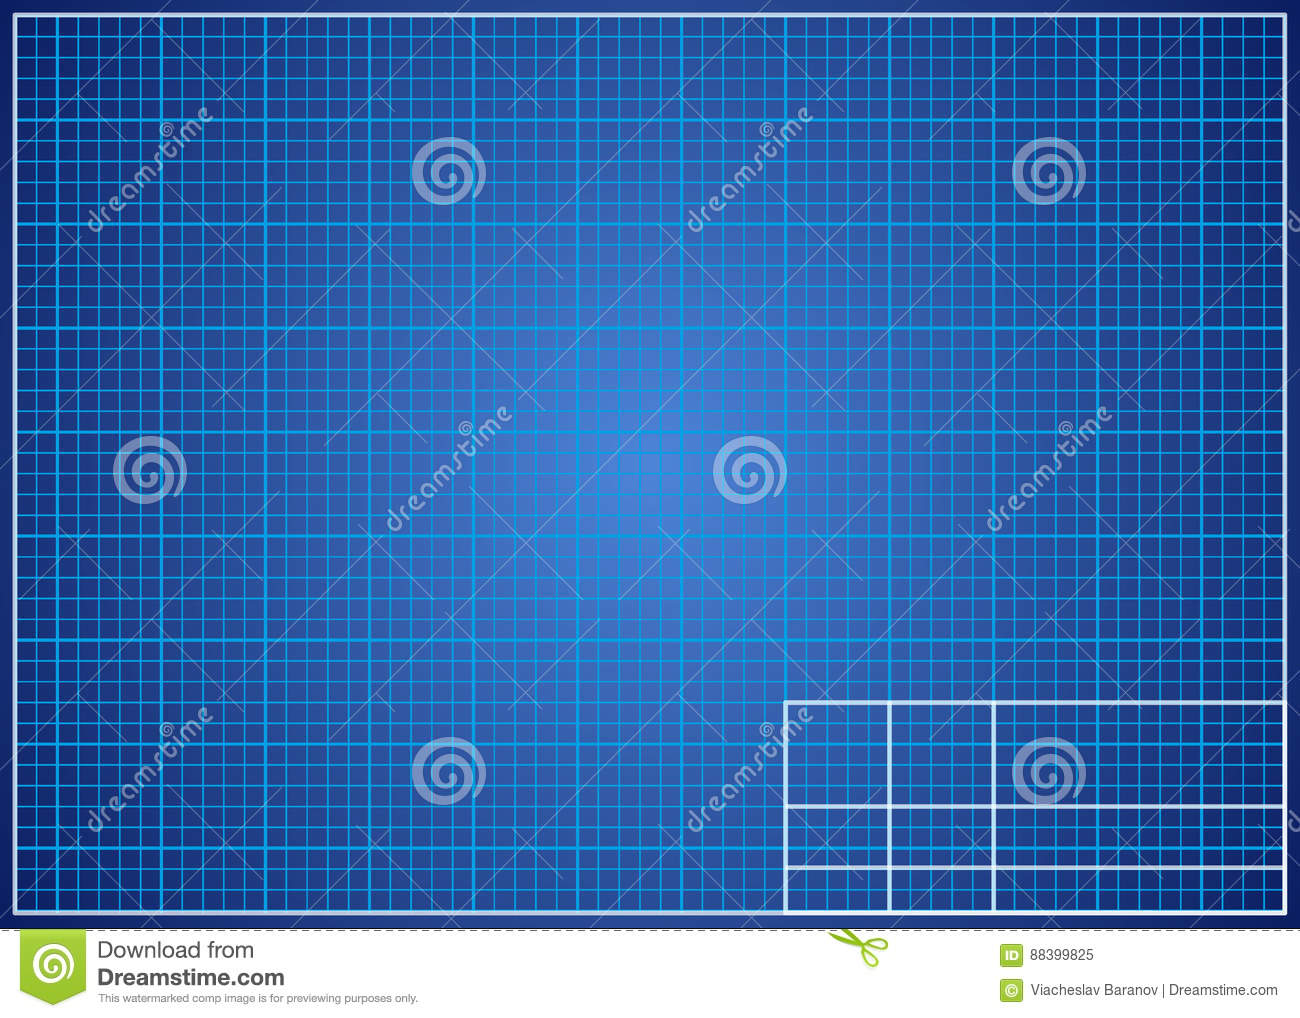 Blueprint background technical design paper stock vector download blueprint background technical design paper stock vector illustration of empty creative malvernweather Image collections